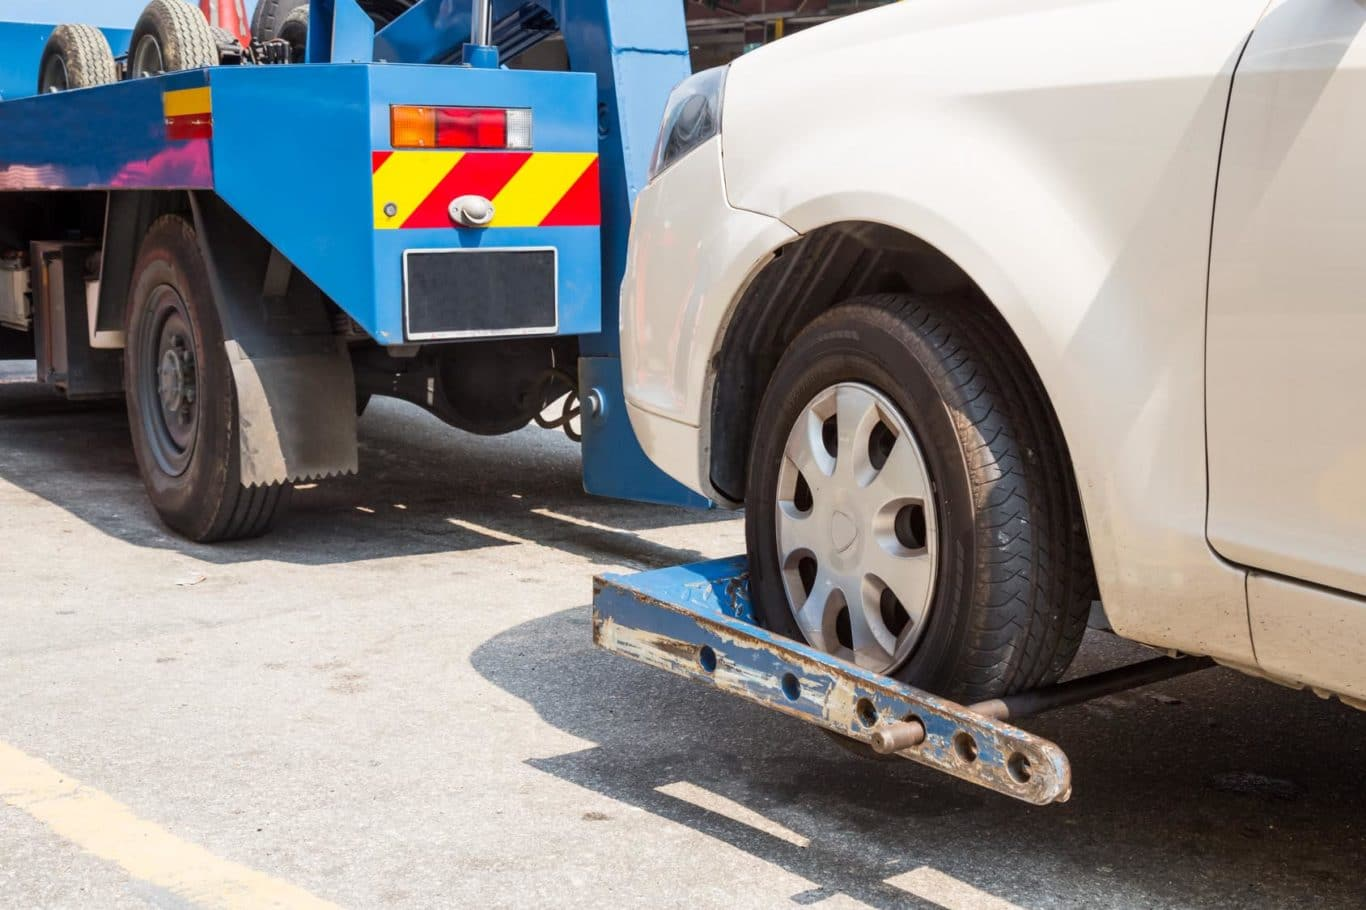 Monknewton expert Car Towing services